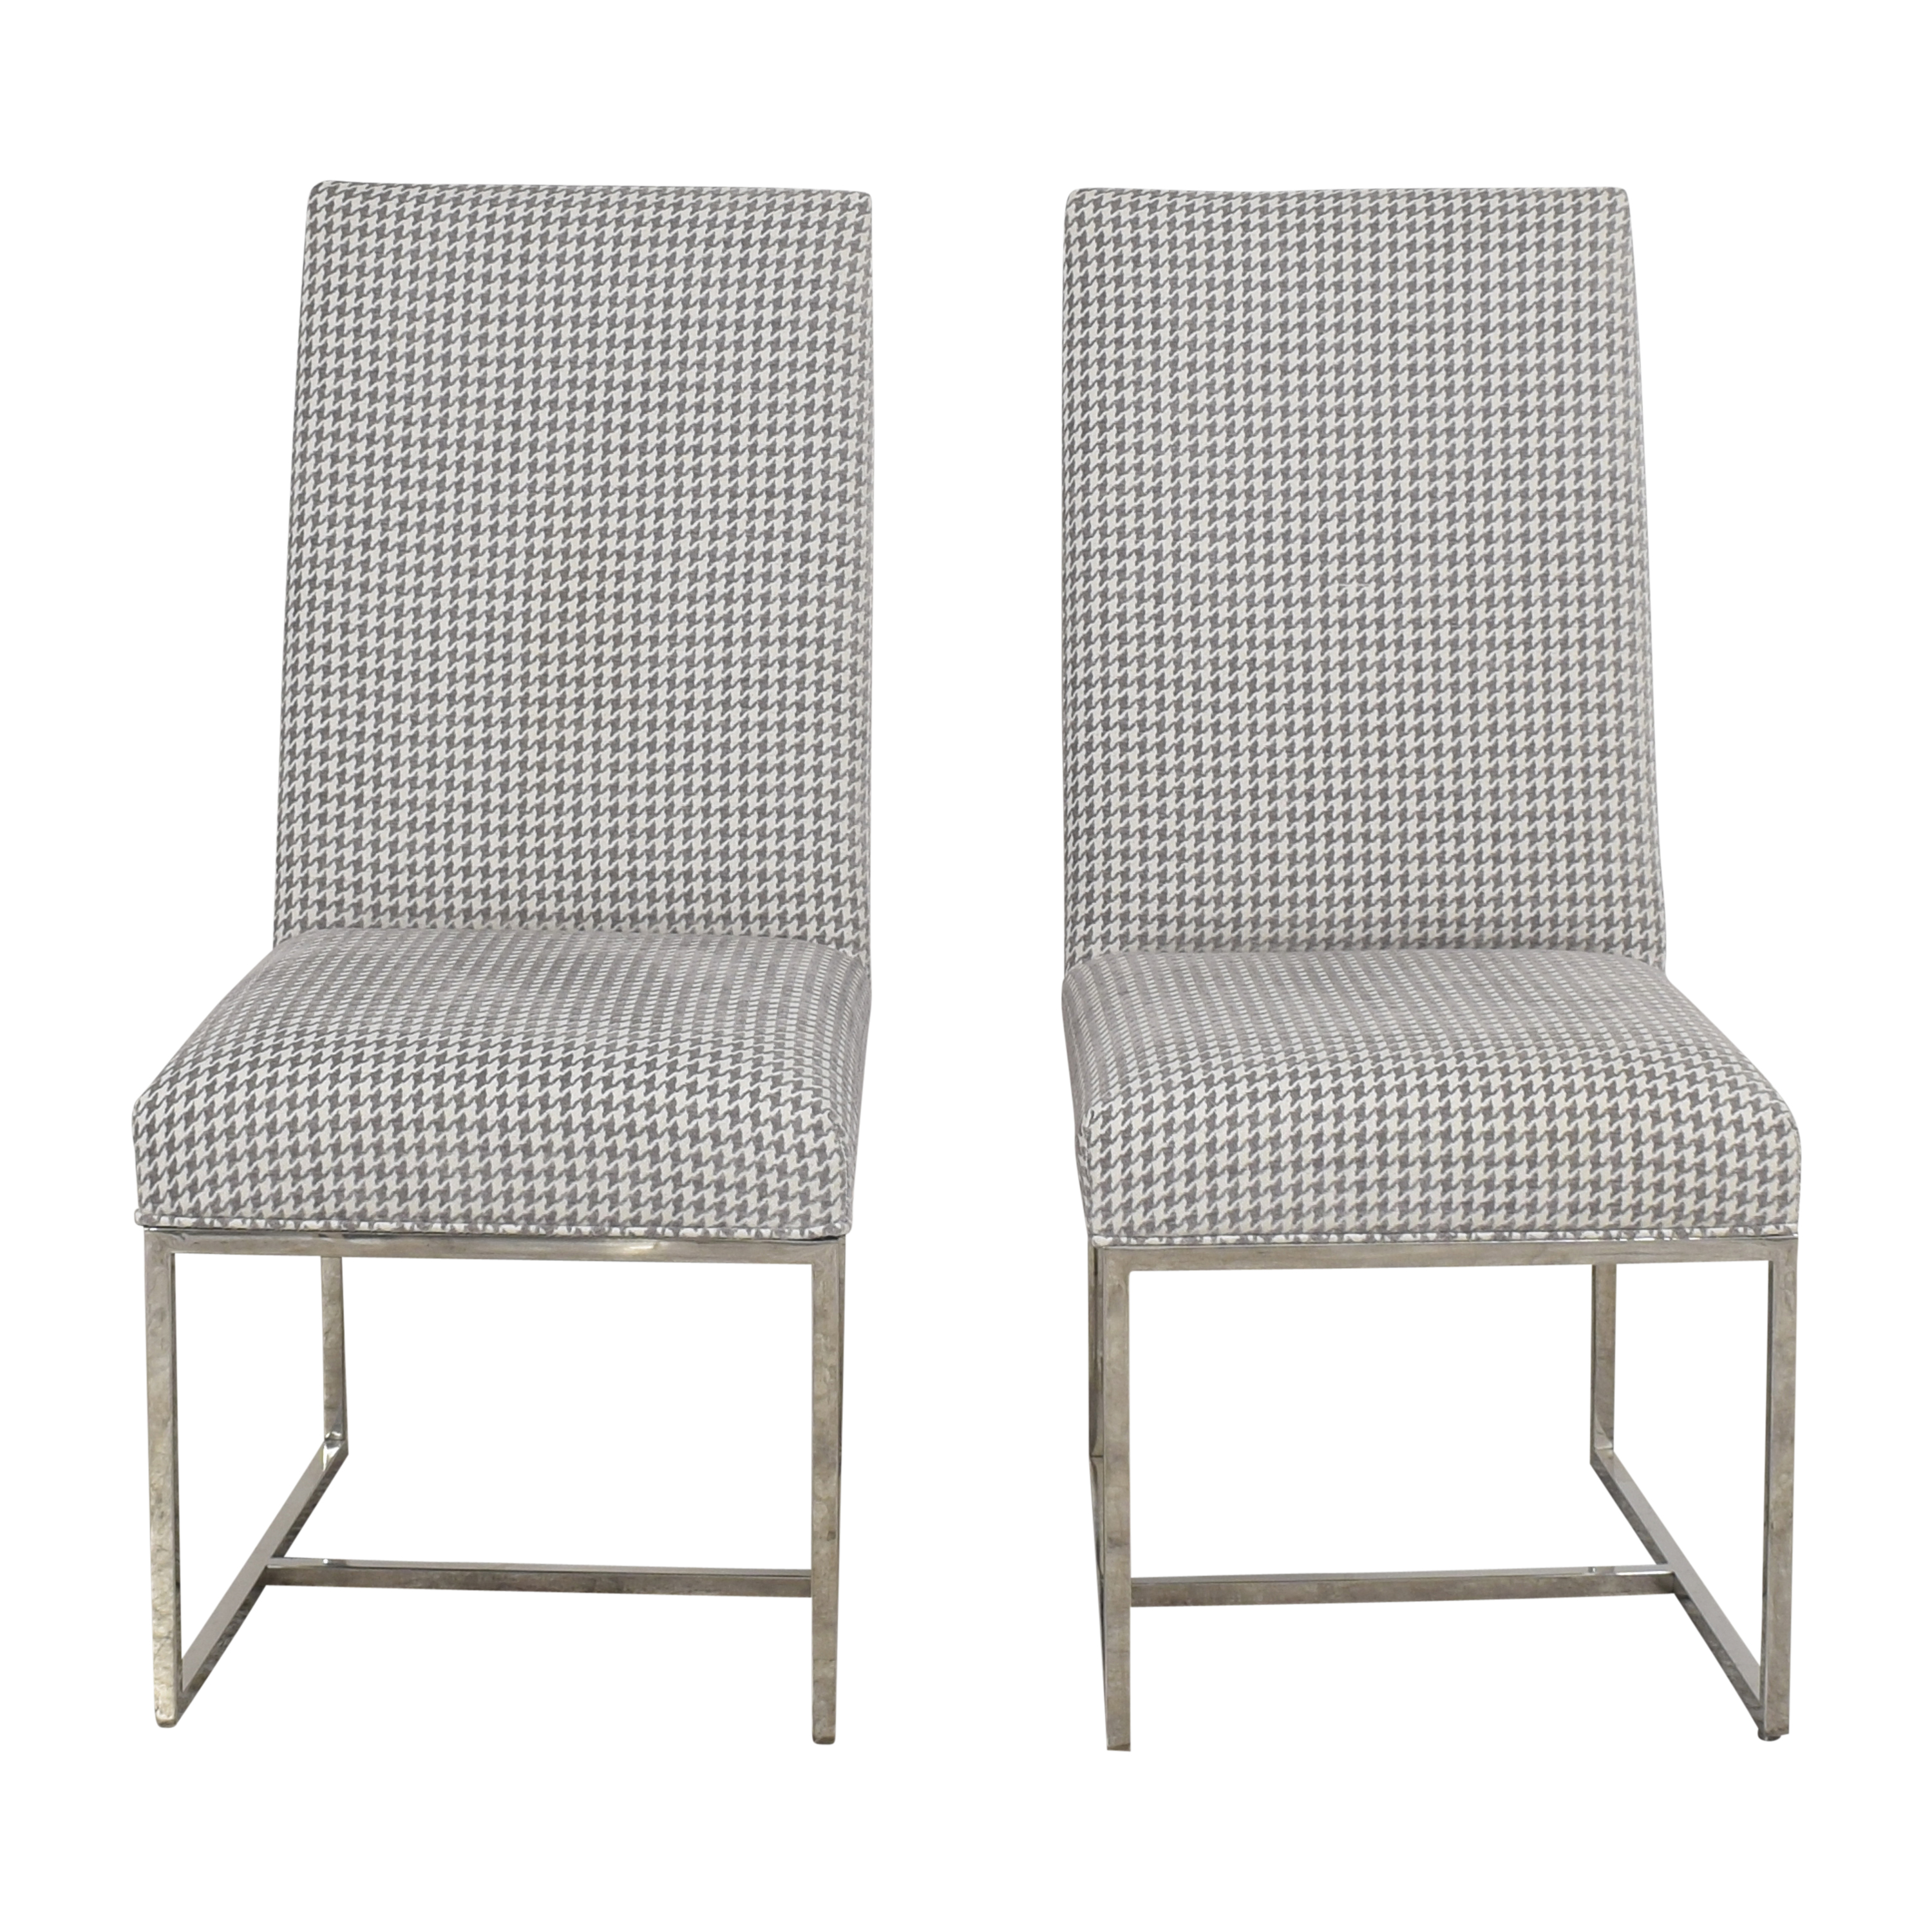 Mitchell Gold + Bob Williams Mitchell Gold + Bob Williams Gage Tall Dining Chairs second hand